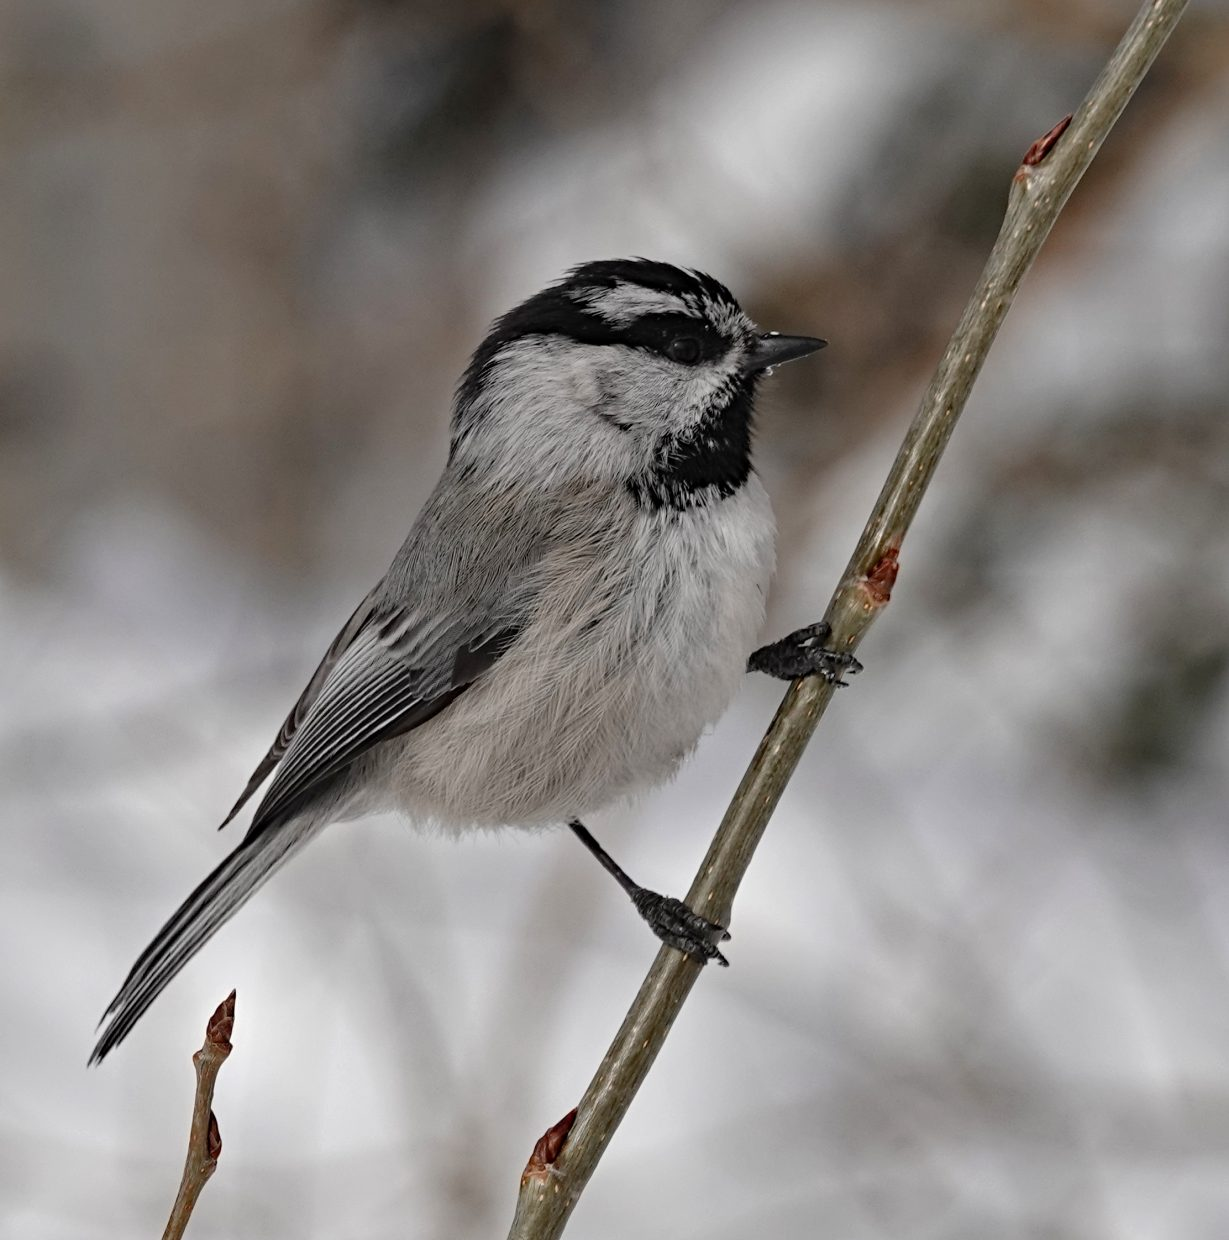 Mountain Chickadee at the feeder near the top of the gondola at Steamboat Resort.